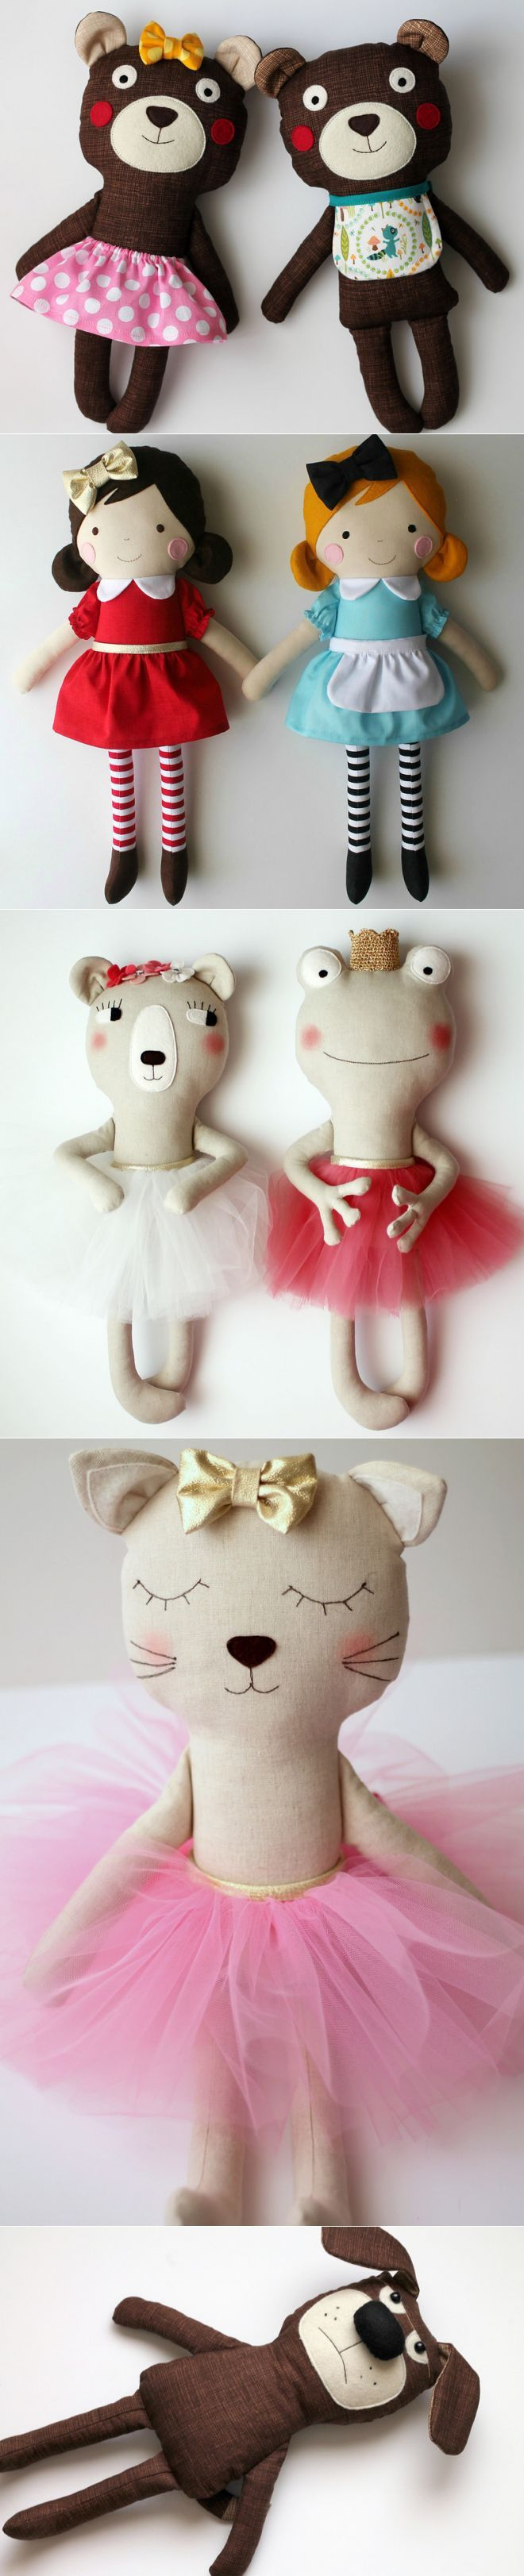 Rag dolls and toys from Anabela Félix - an etsy shop also